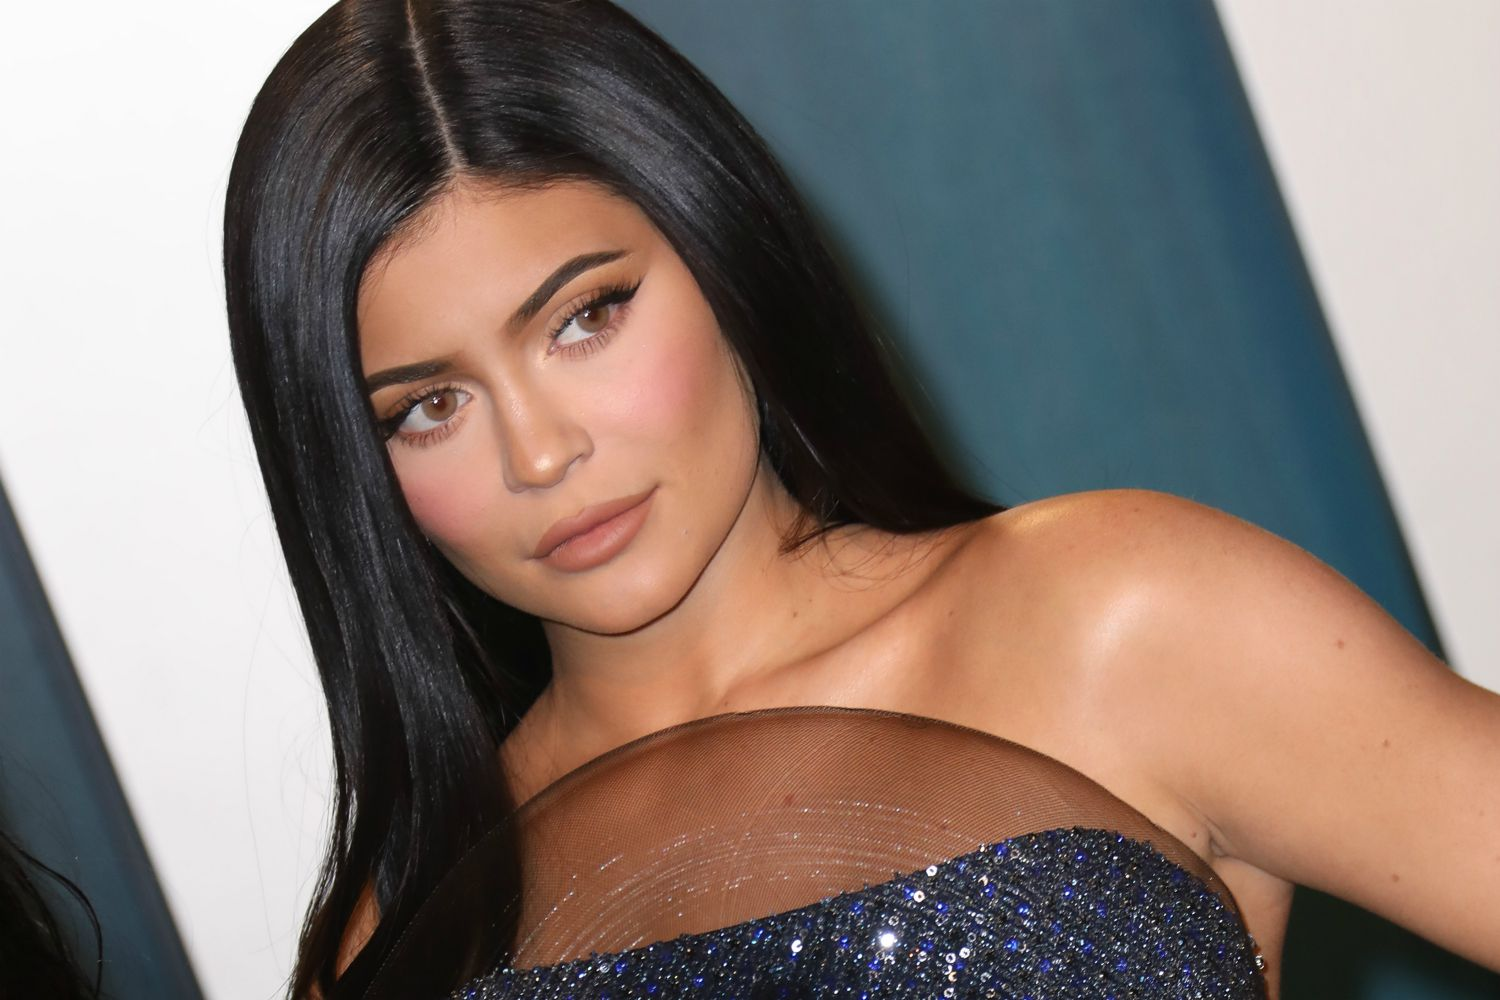 What Is Blackfishing And Why Is Kylie Jenner Being Accused Of It